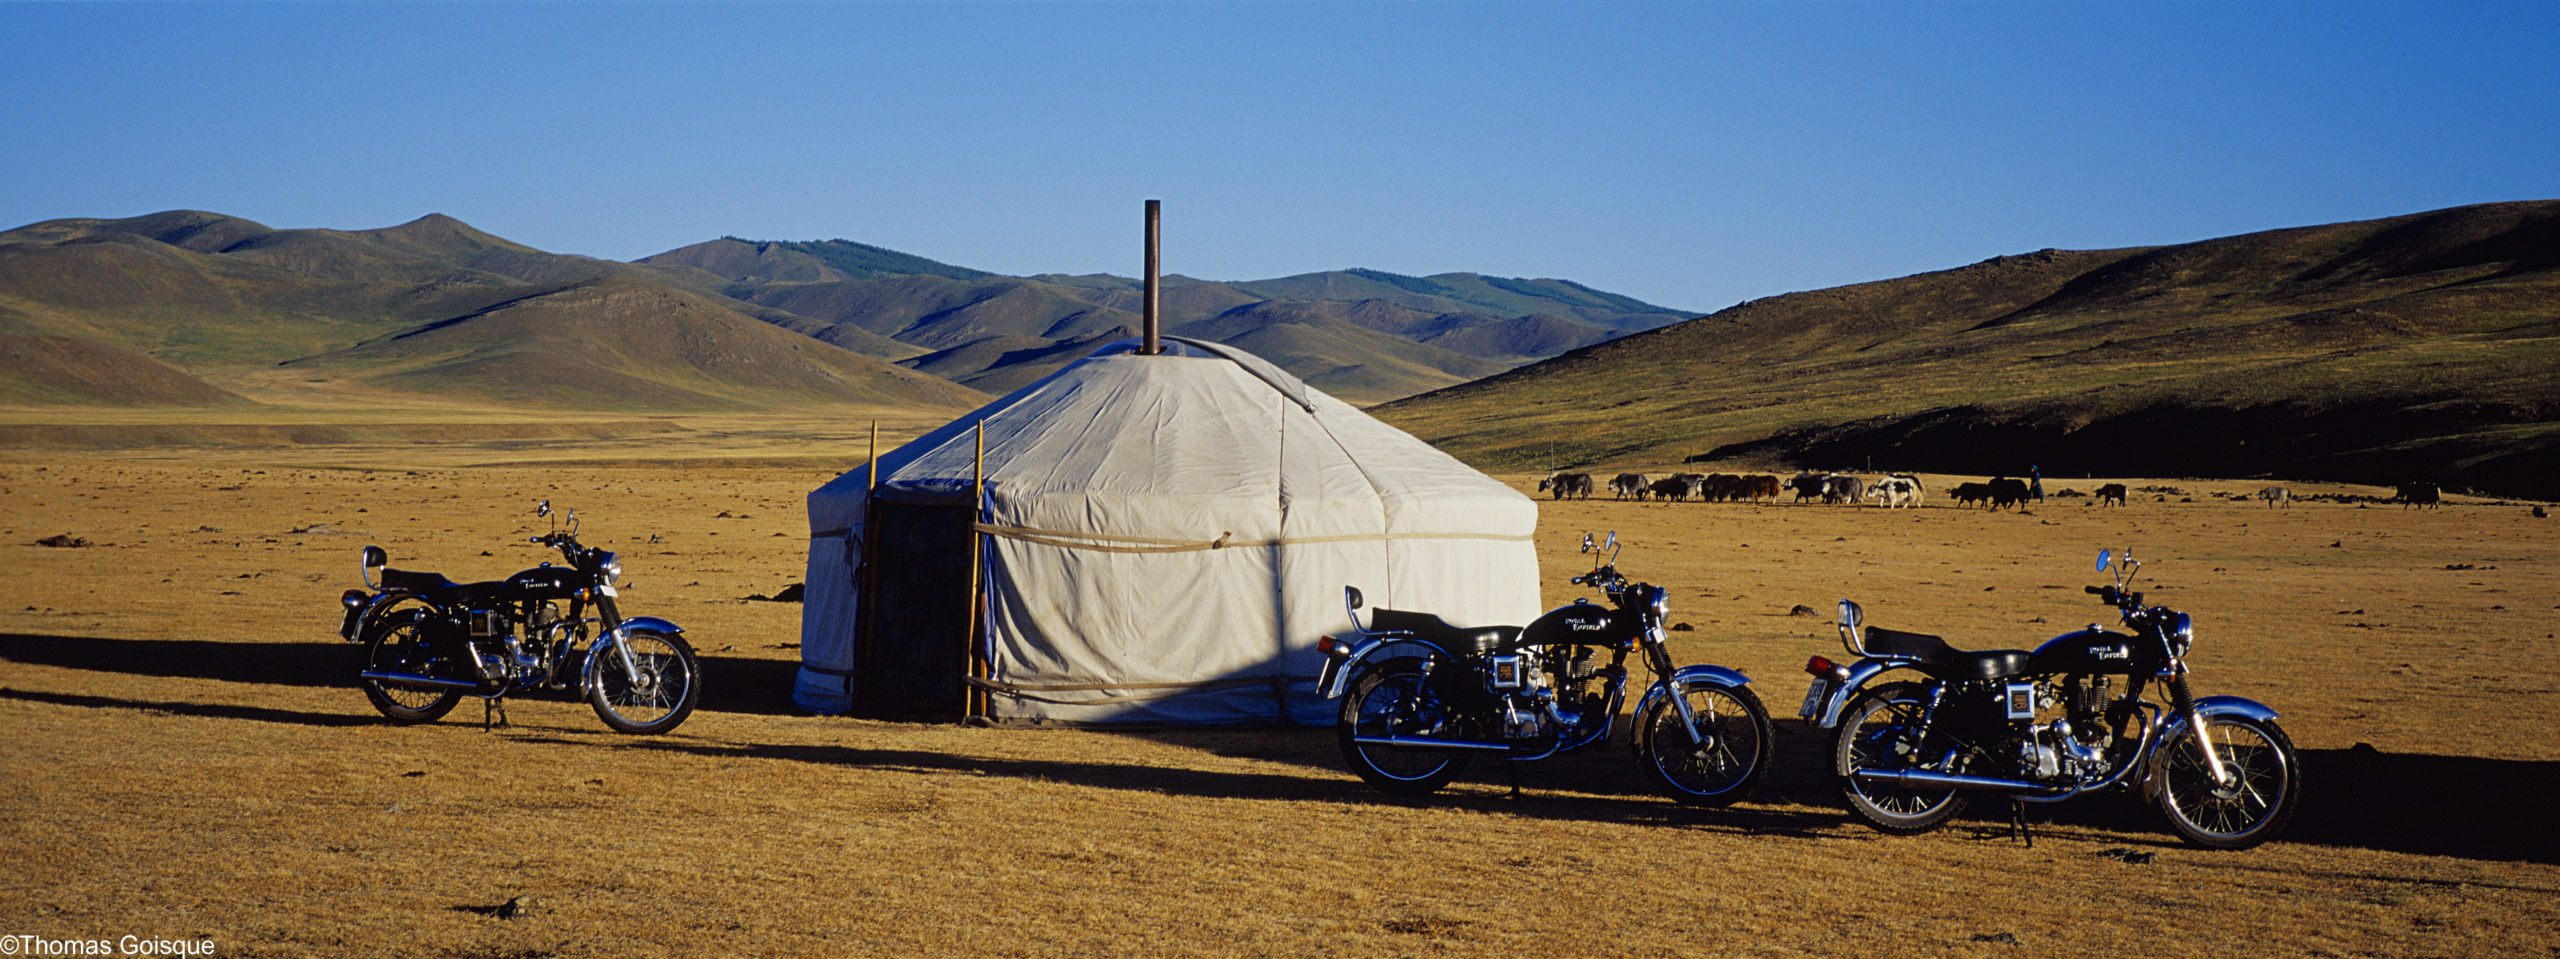 Motorcycle tour Mongolia